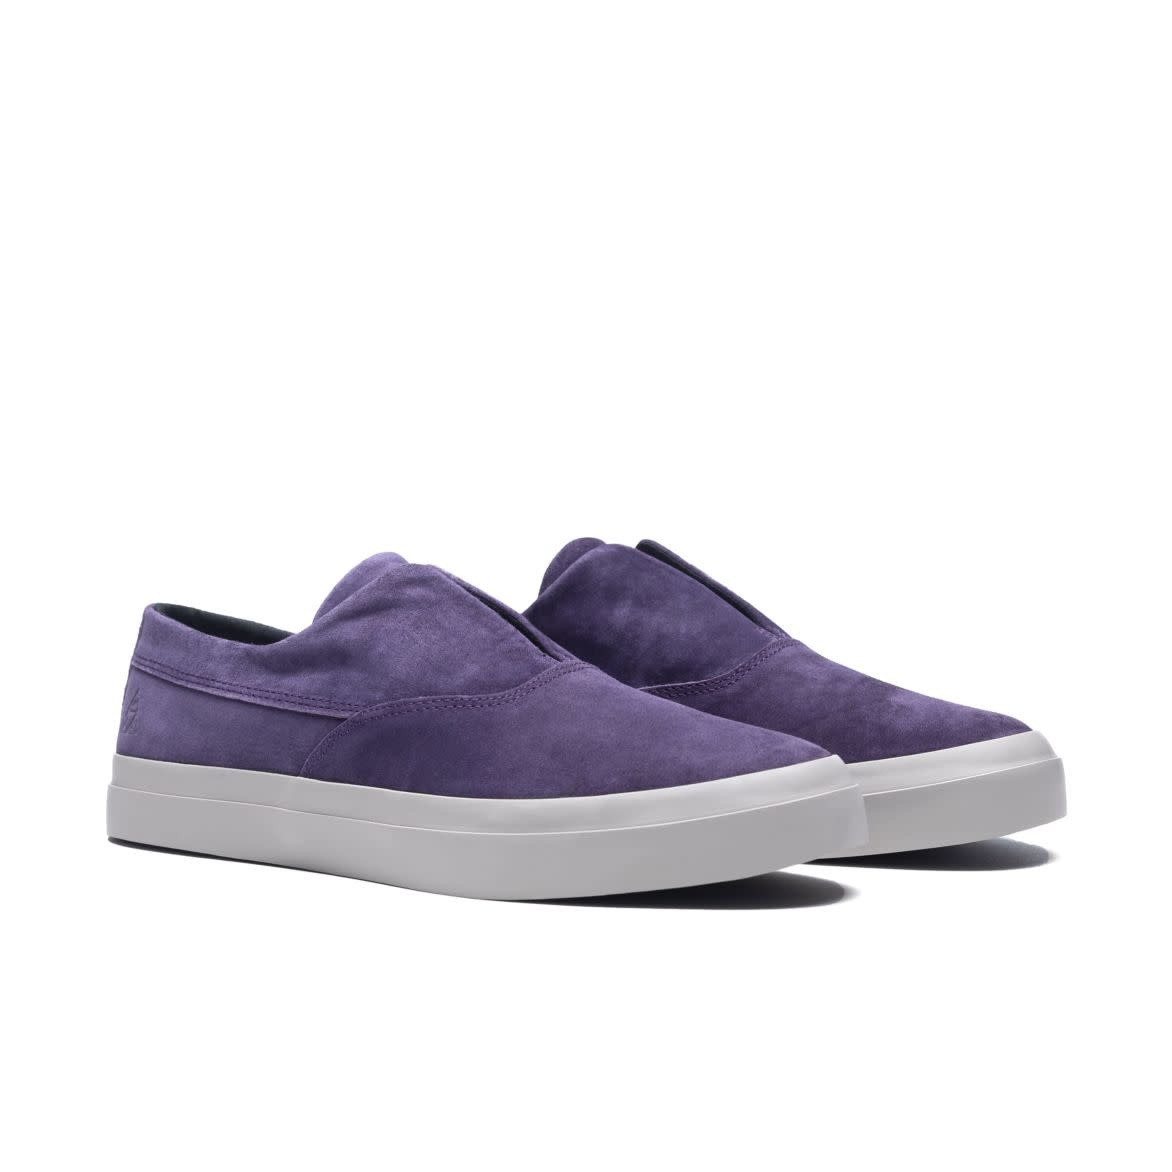 HUF Dylan Slip On Purple Suede